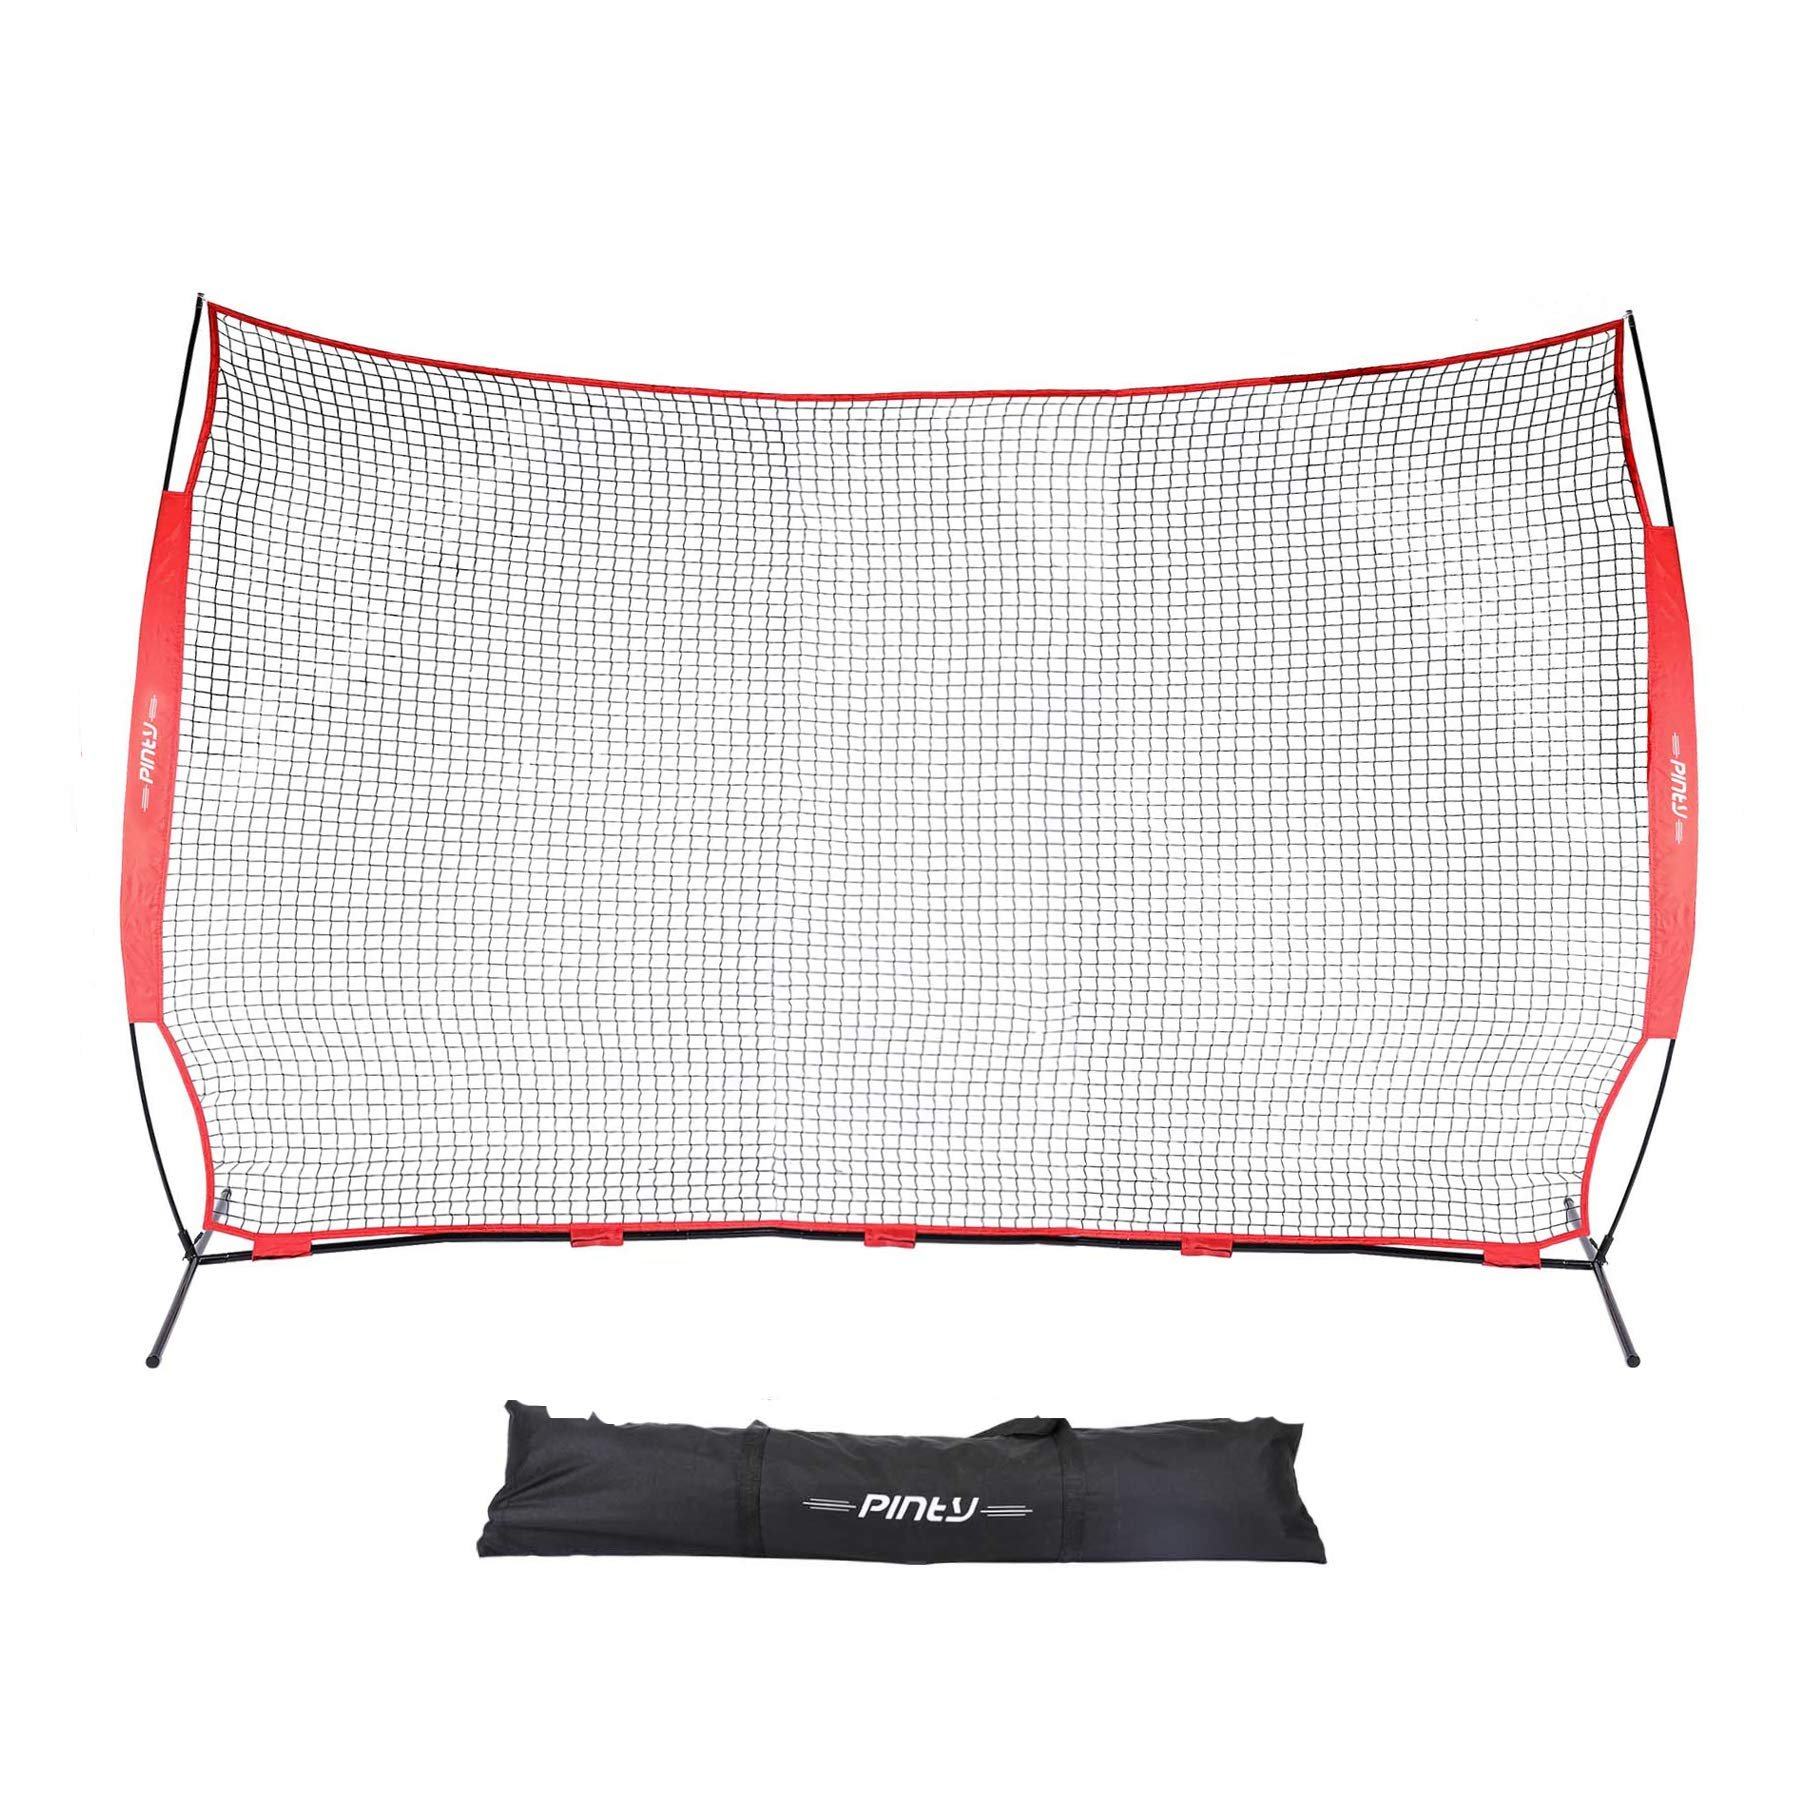 Pinty Barricade Backstop Net 12×9 ft, Backstop Net for Lacrosse, Baseball, Basketball, Soccer, Field Hockey and Softball Practice/Barrier Net Hitting Net for Backyard, Park, etc. with Carry Bag by Pinty